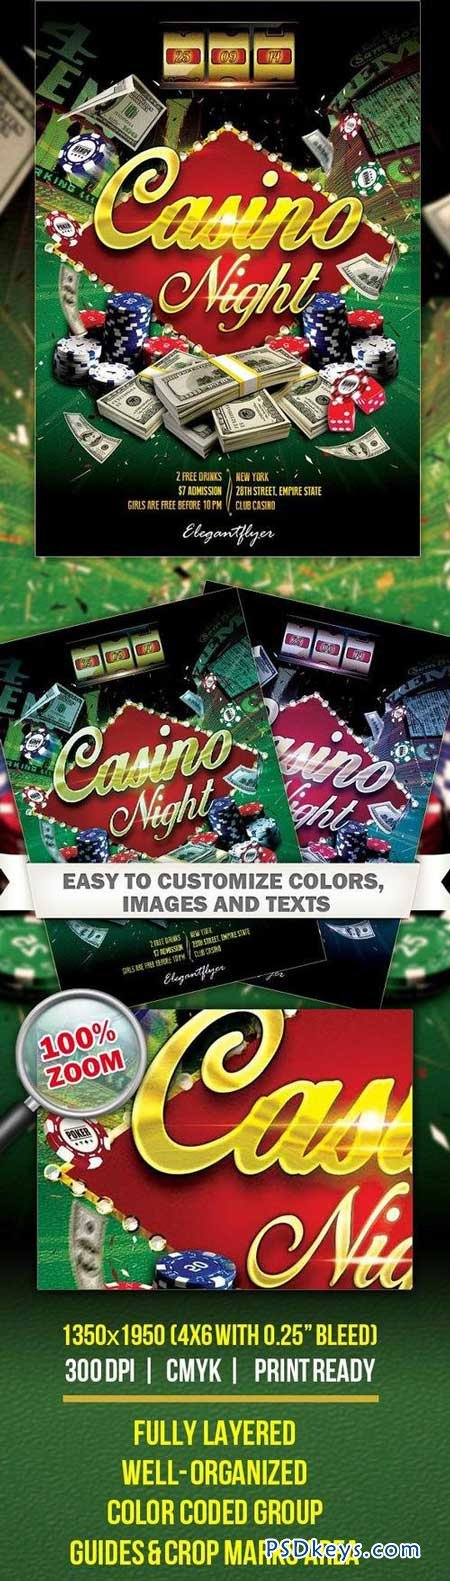 Casino Night Flyer Psd Template Free Download Photoshop Vector